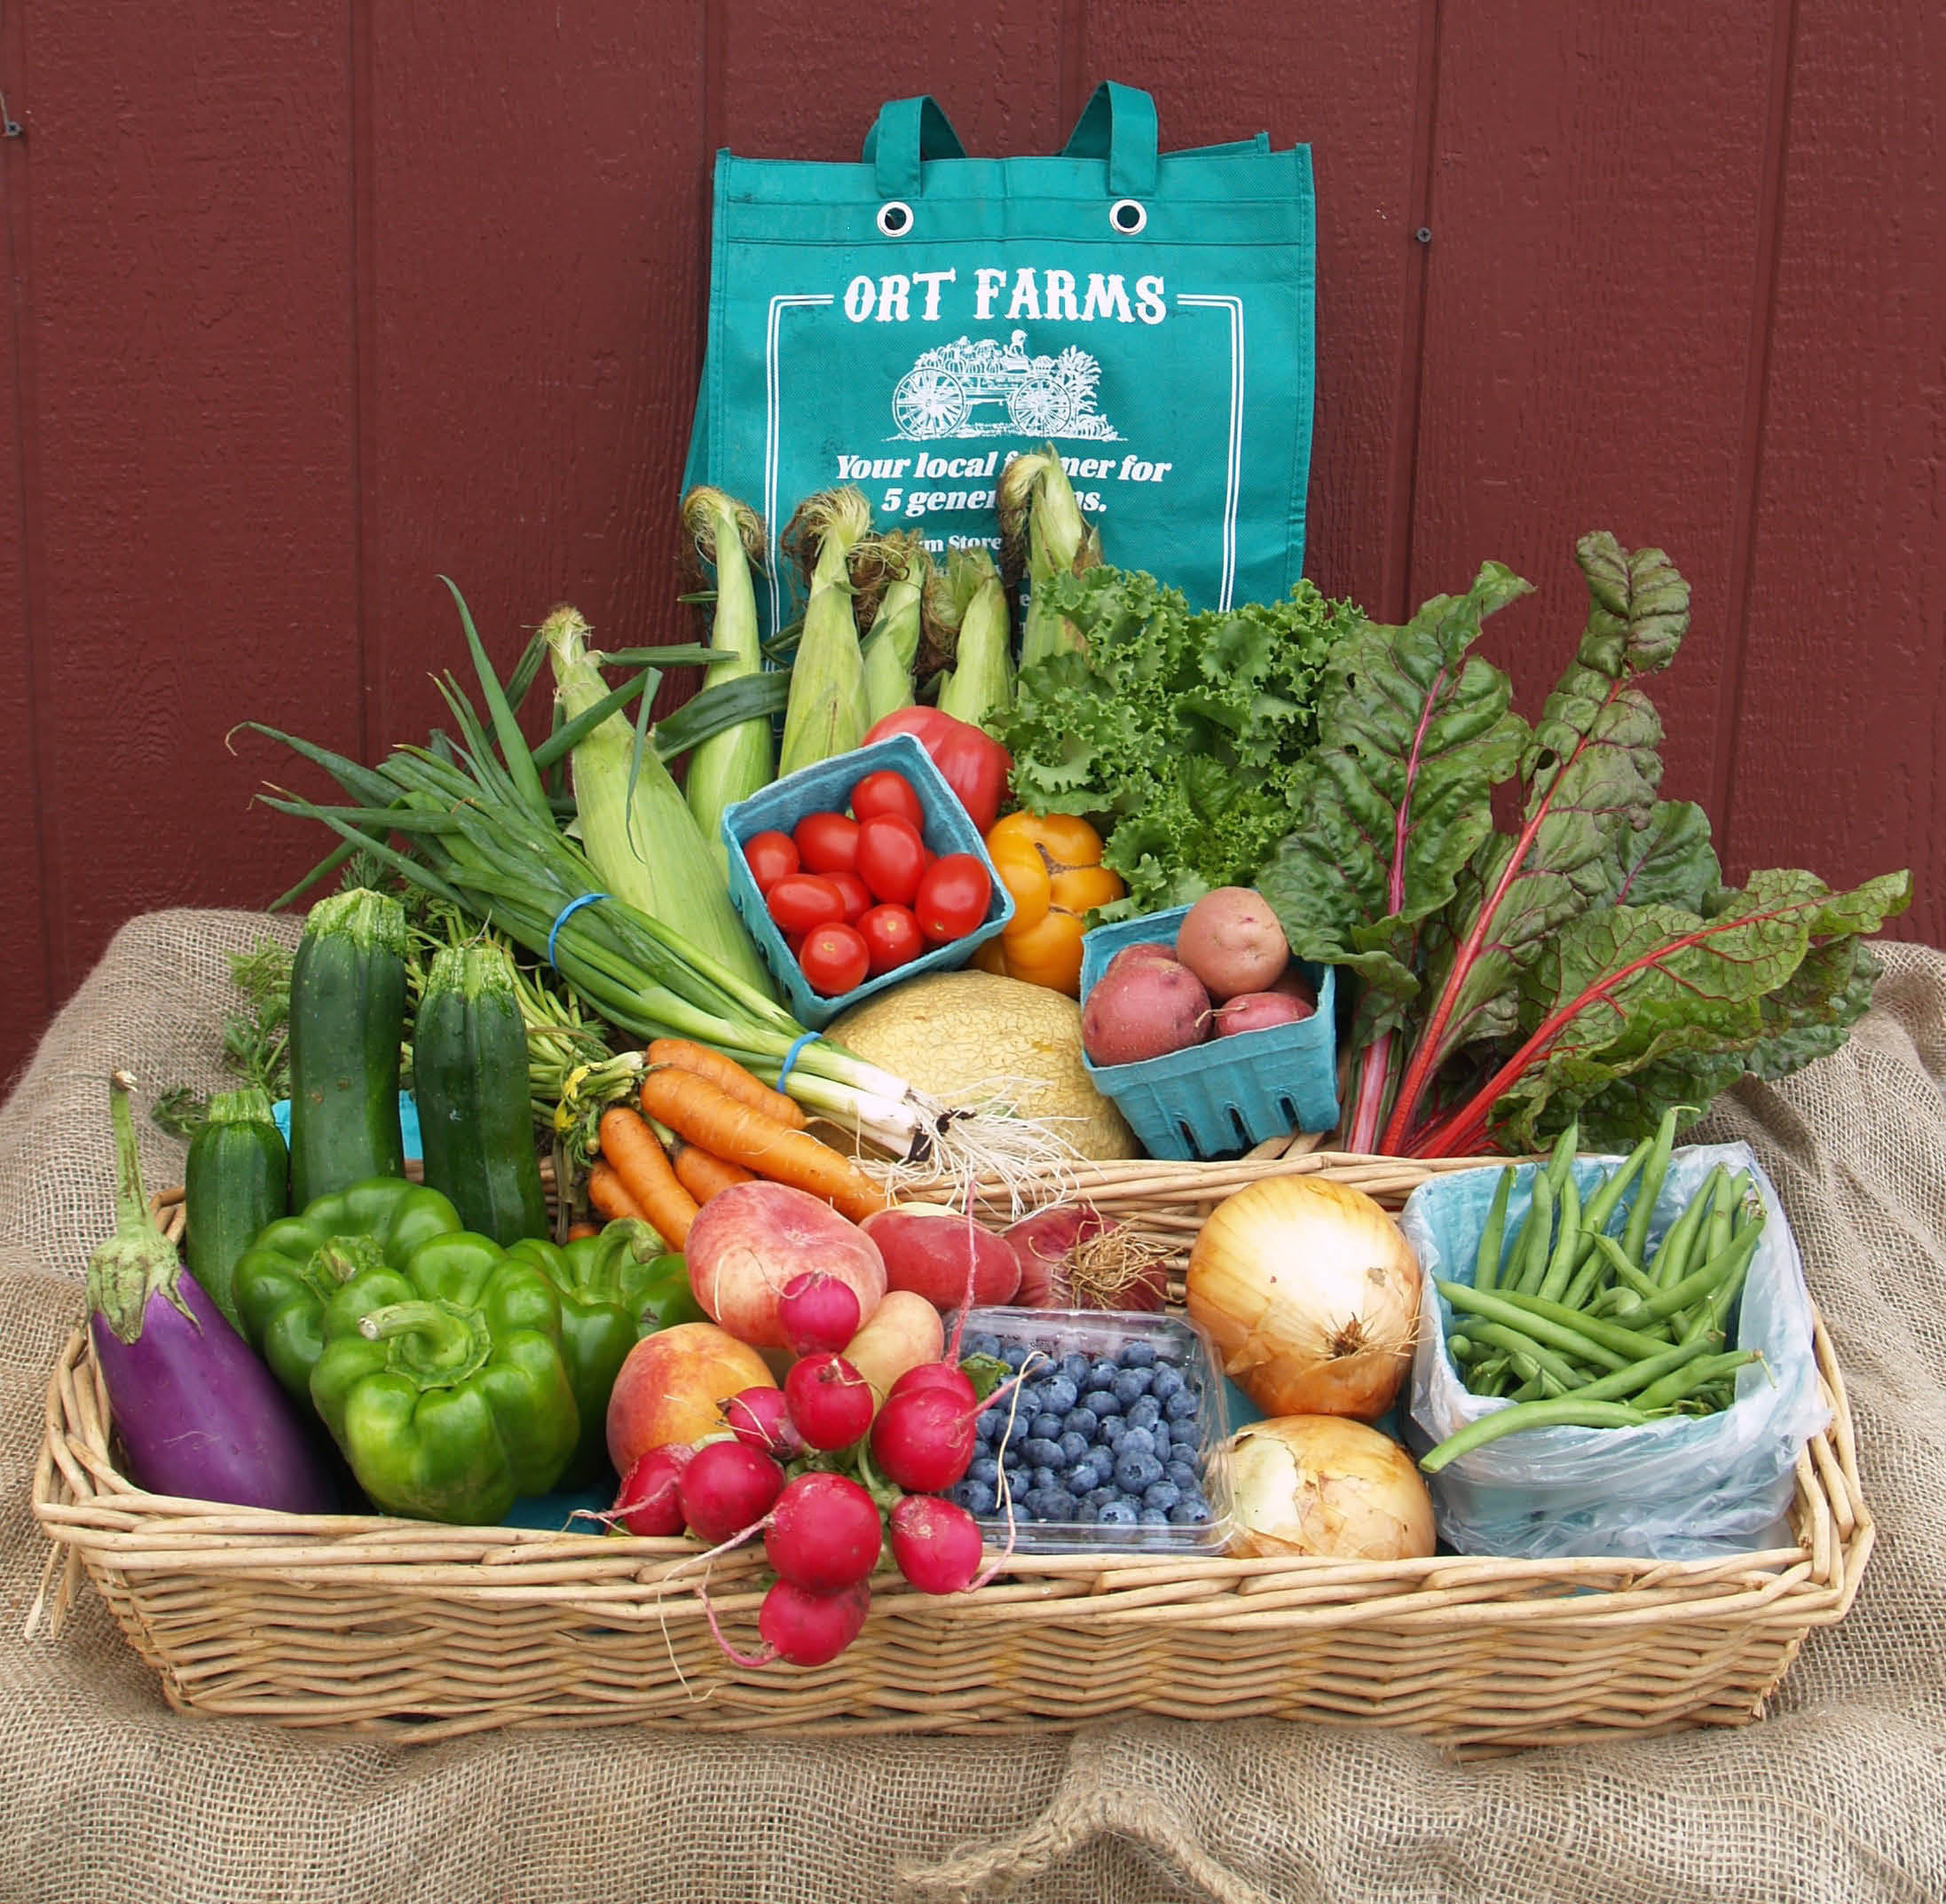 Ort Farms CSA Program in Long Valley NJ